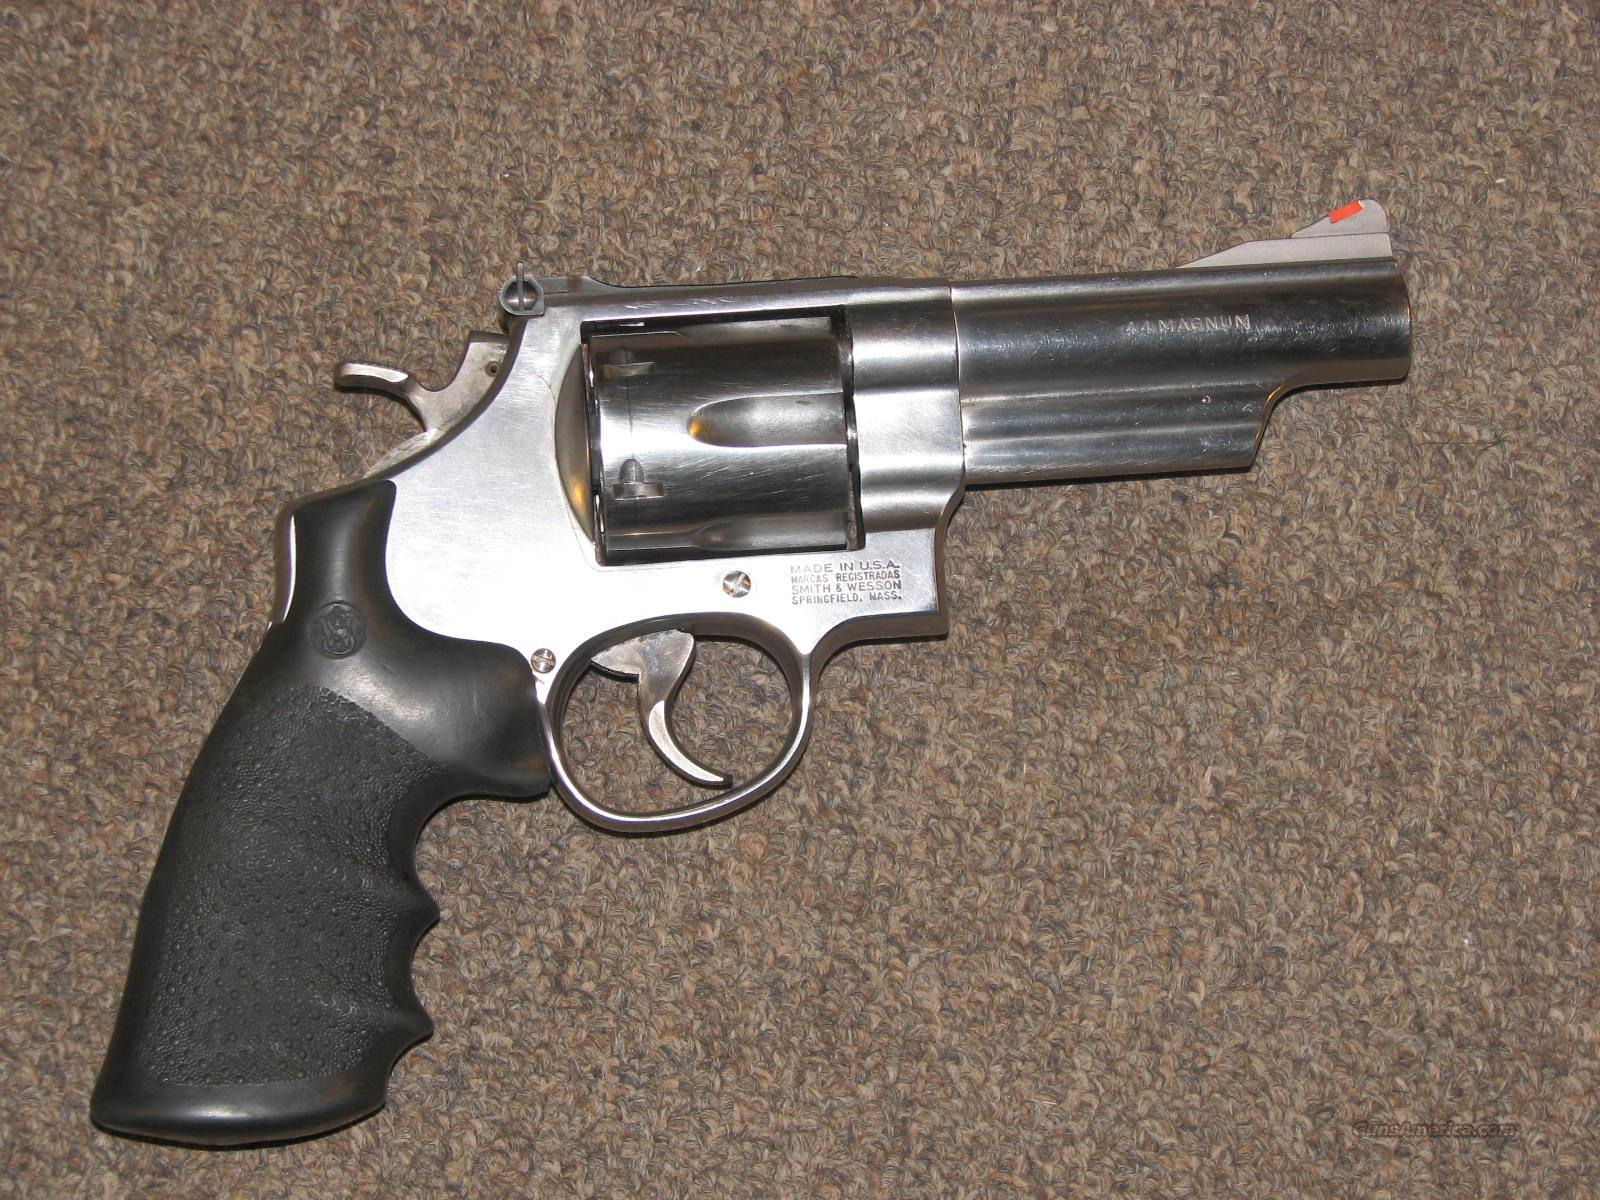 SMITH & WESSON 629-4 .44 MAG  Guns > Pistols > Smith & Wesson Revolvers > Model 629